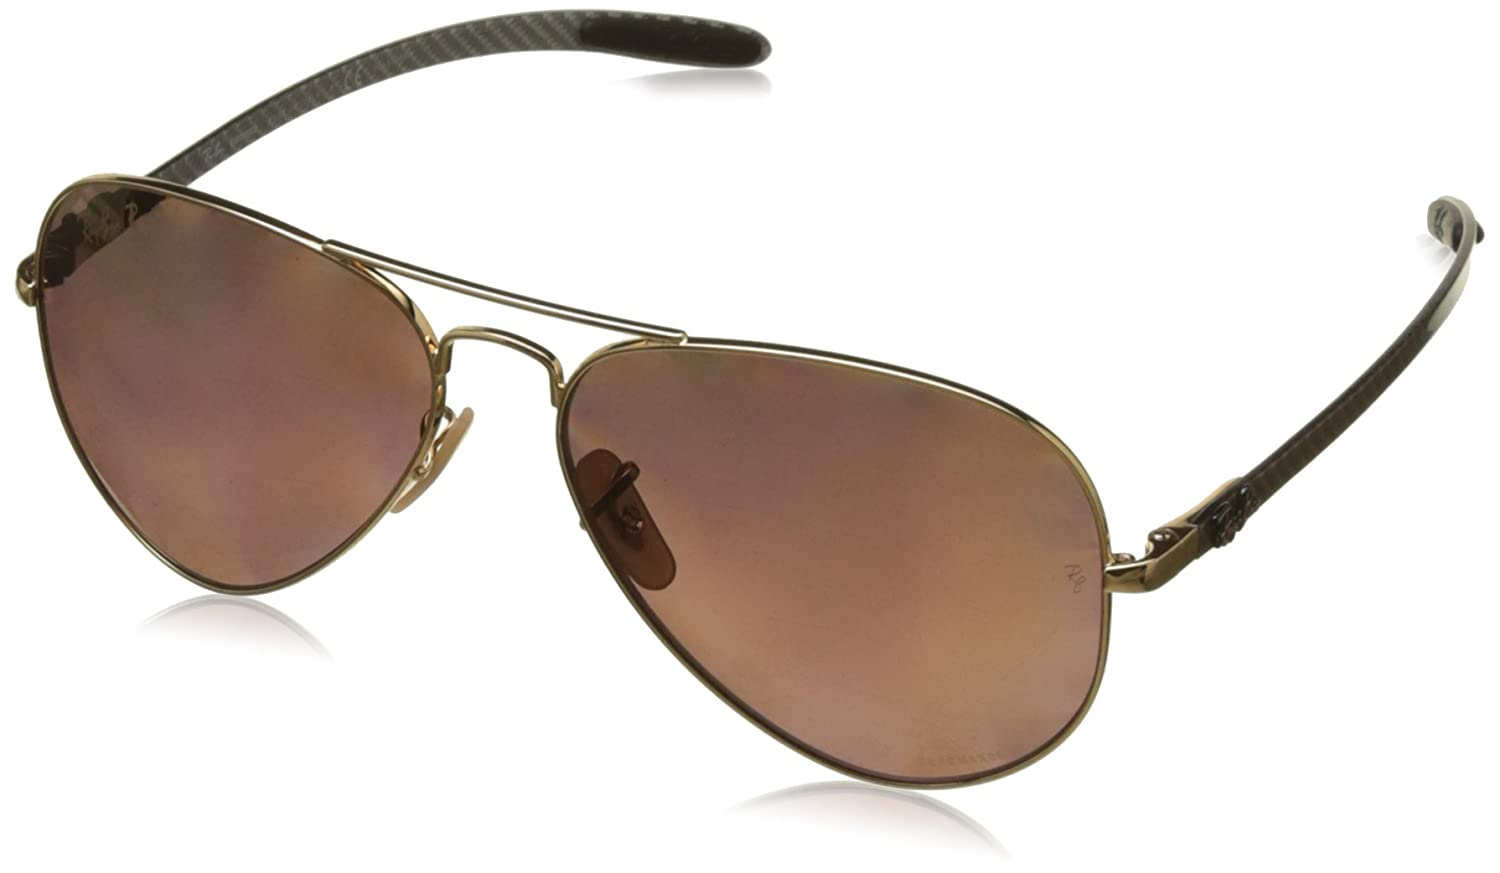 af8baaddcb Amazon.com  Ray-Ban Unisex RB8317CH Chromance Lens Aviator Sunglasses